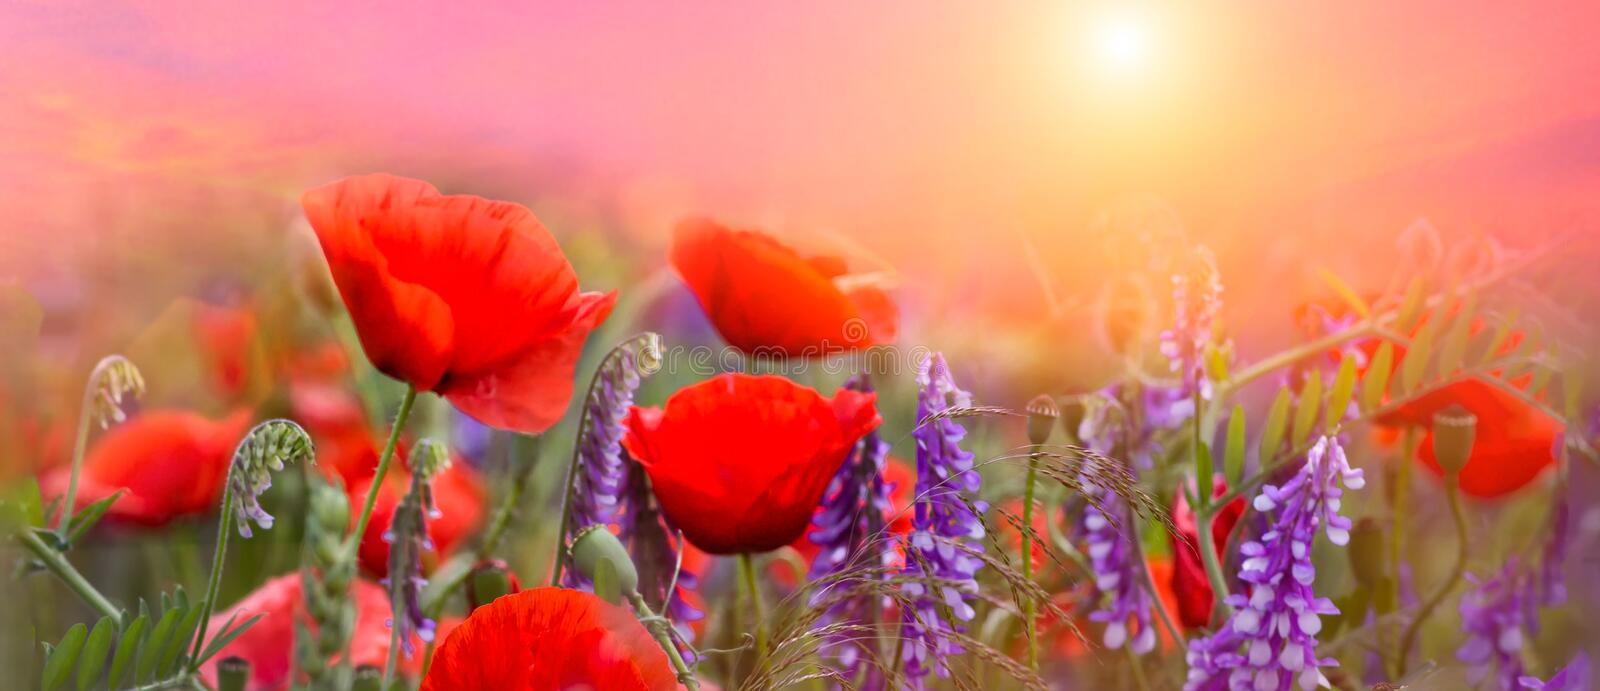 Spring red poppies flowers primroses on a beautiful pink background macro. Blurred gentle sky-sunset background. Floral nature. Background, free space for text stock image